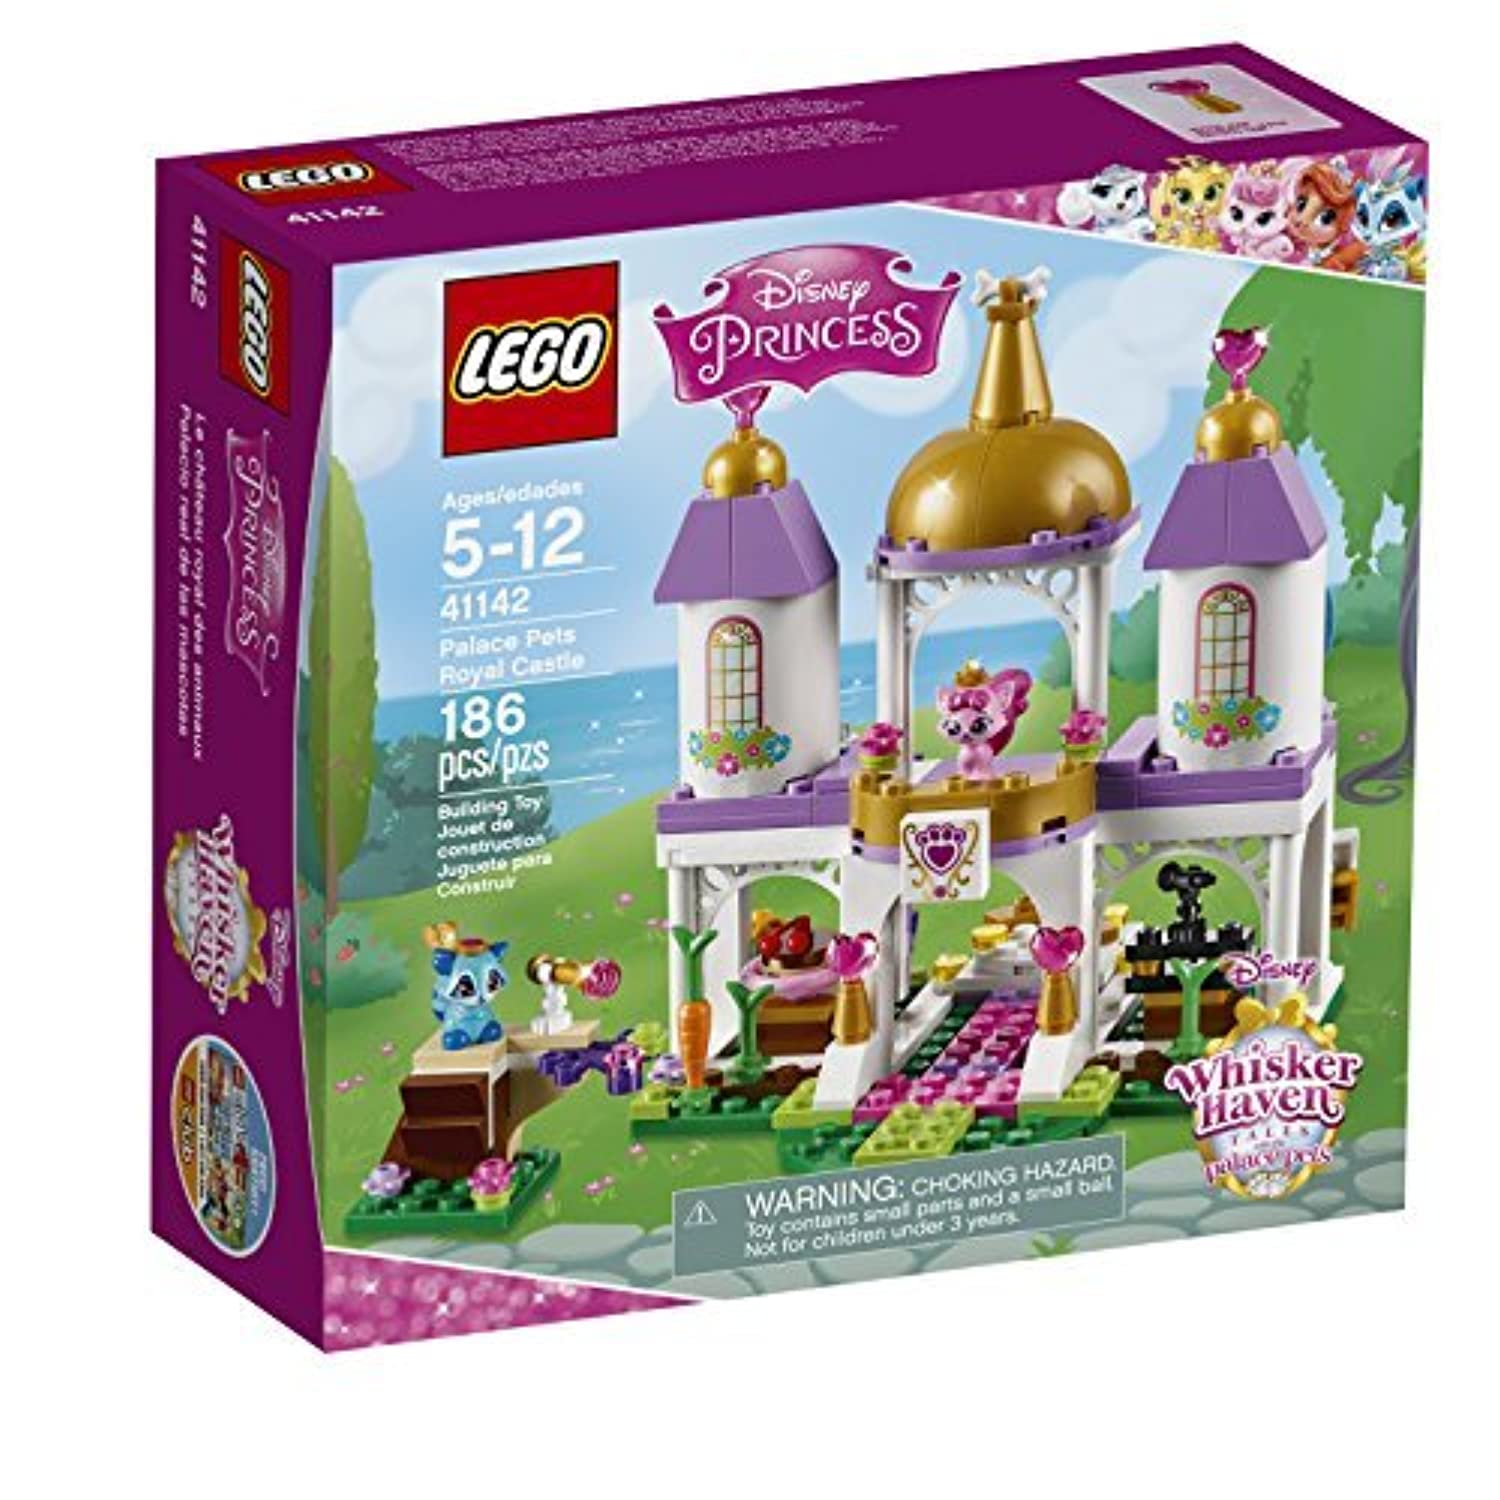 LEGO Disney Princess Palace Pets Royal Castle 41142 [並行輸入品]